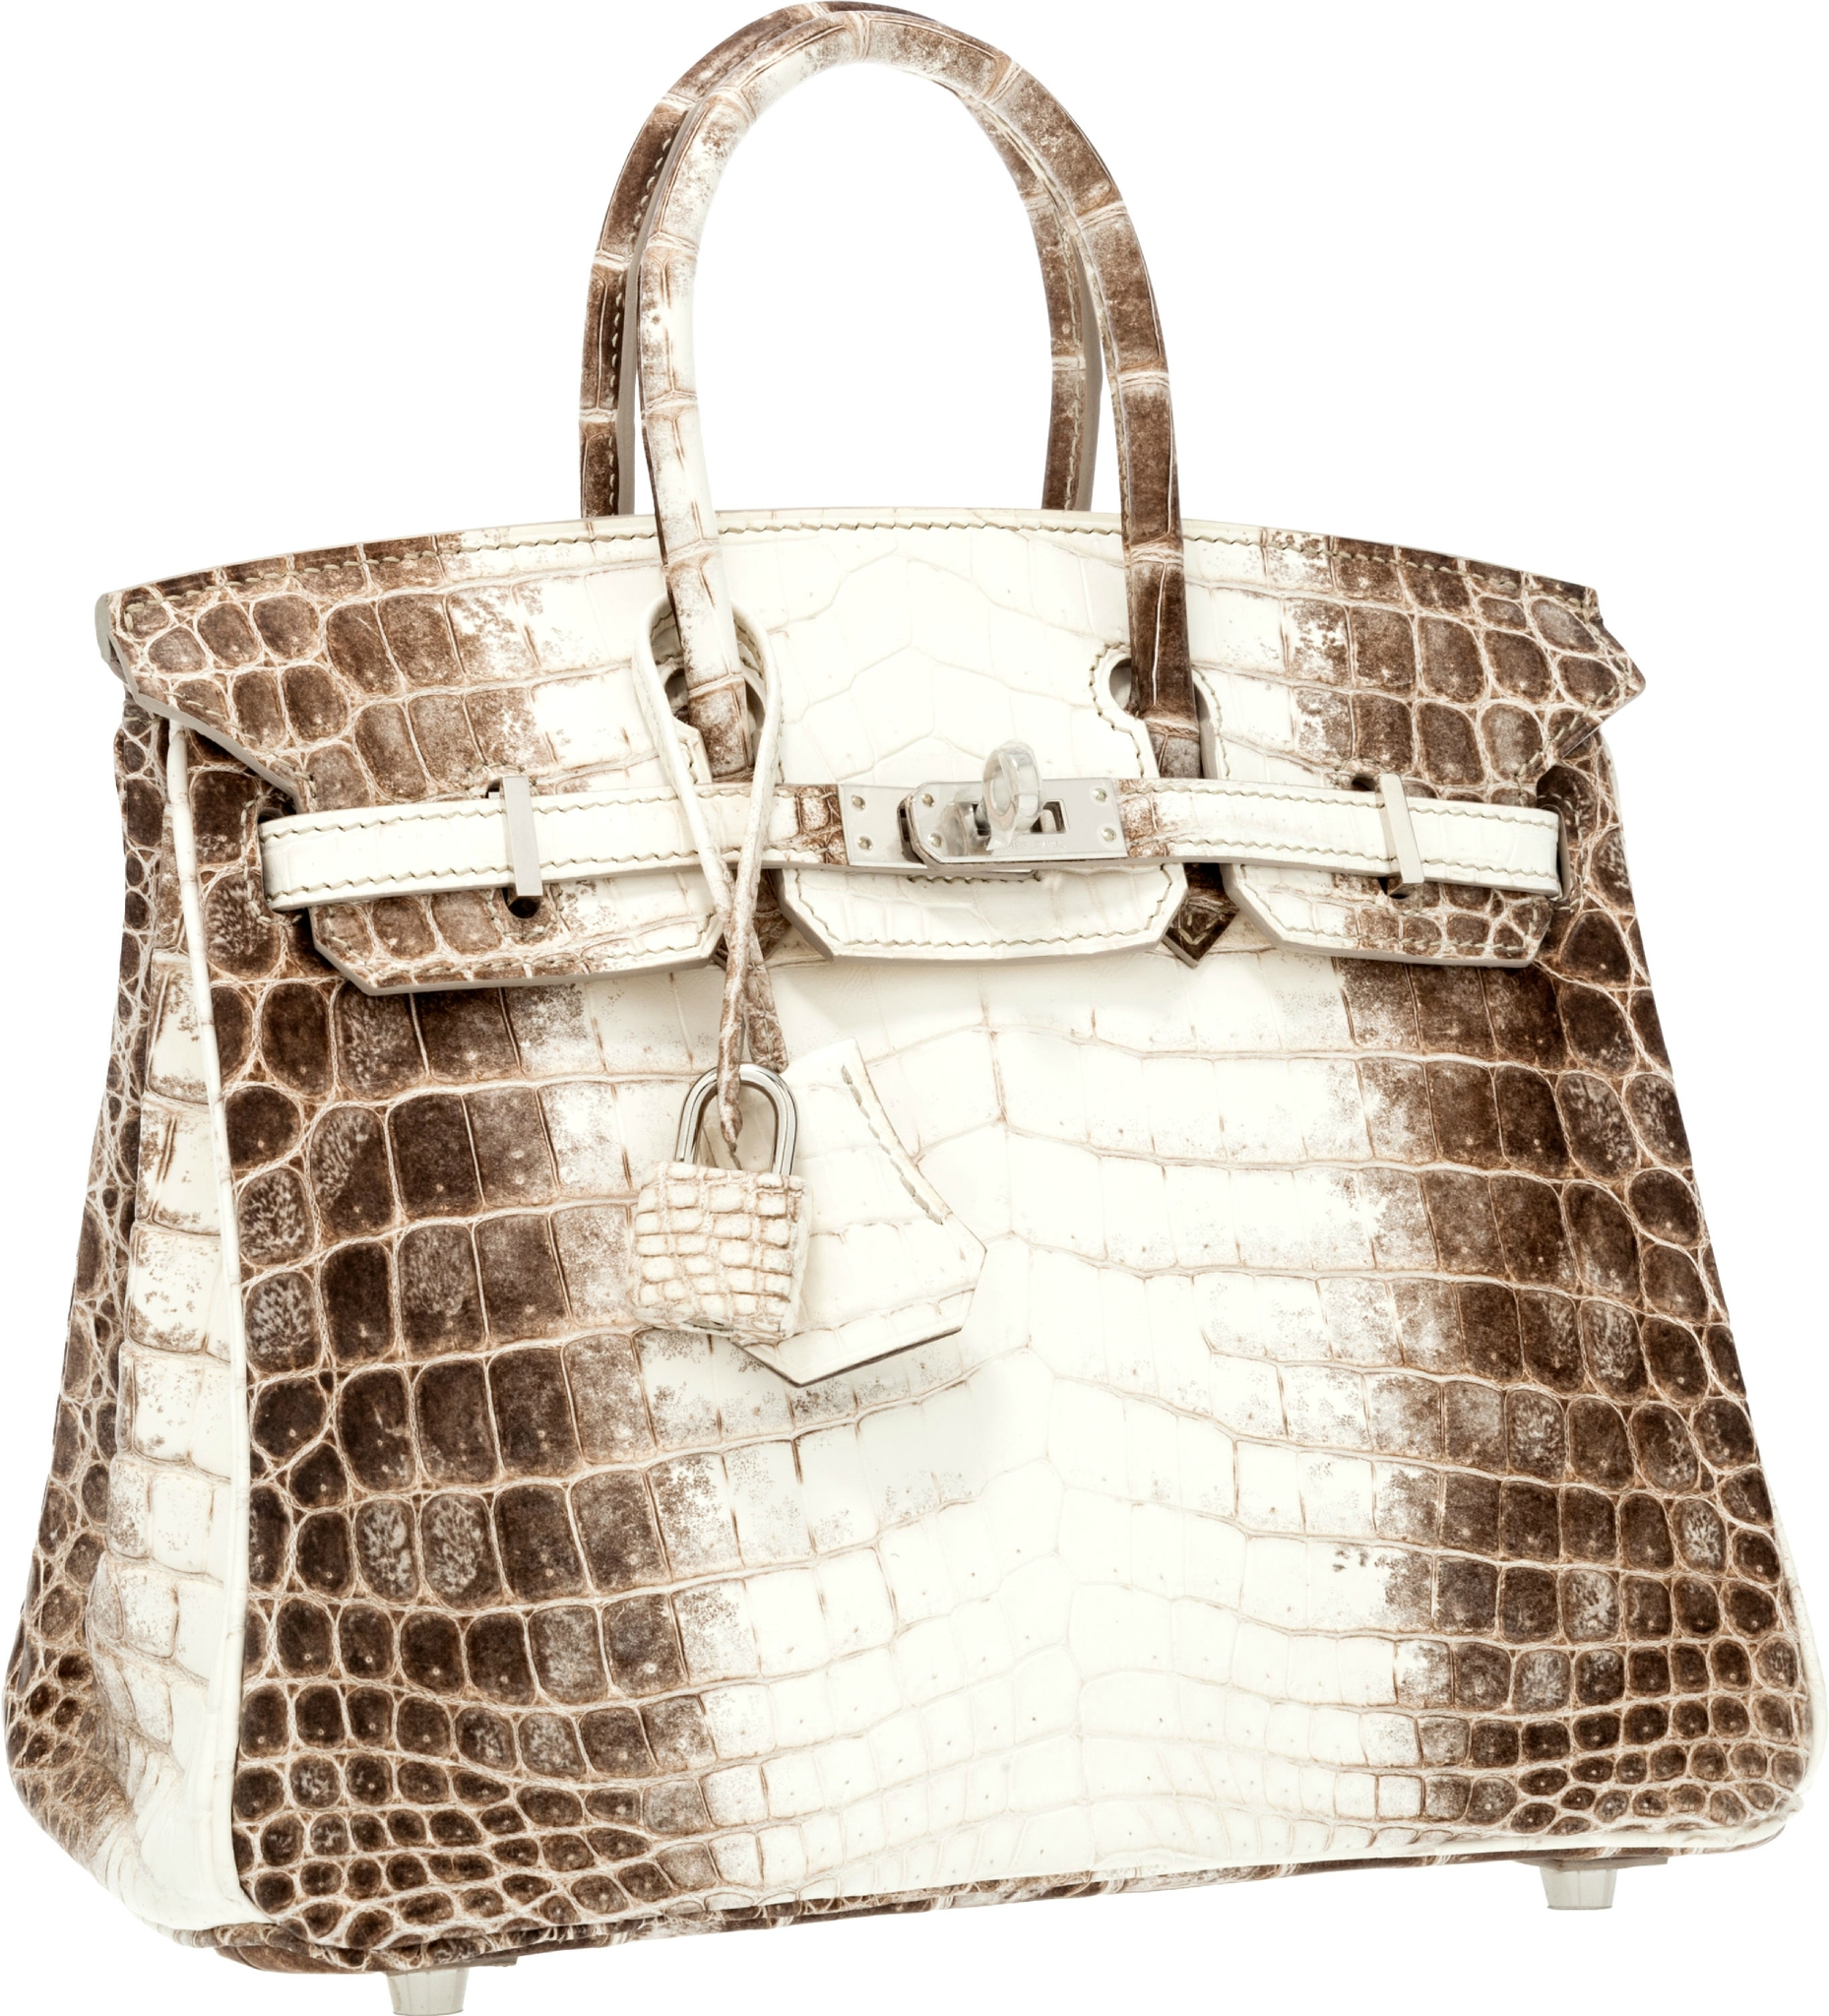 3a95b3c8df6c Replica Hermès Birkin Himalayan crocodile bag review - Popular ...